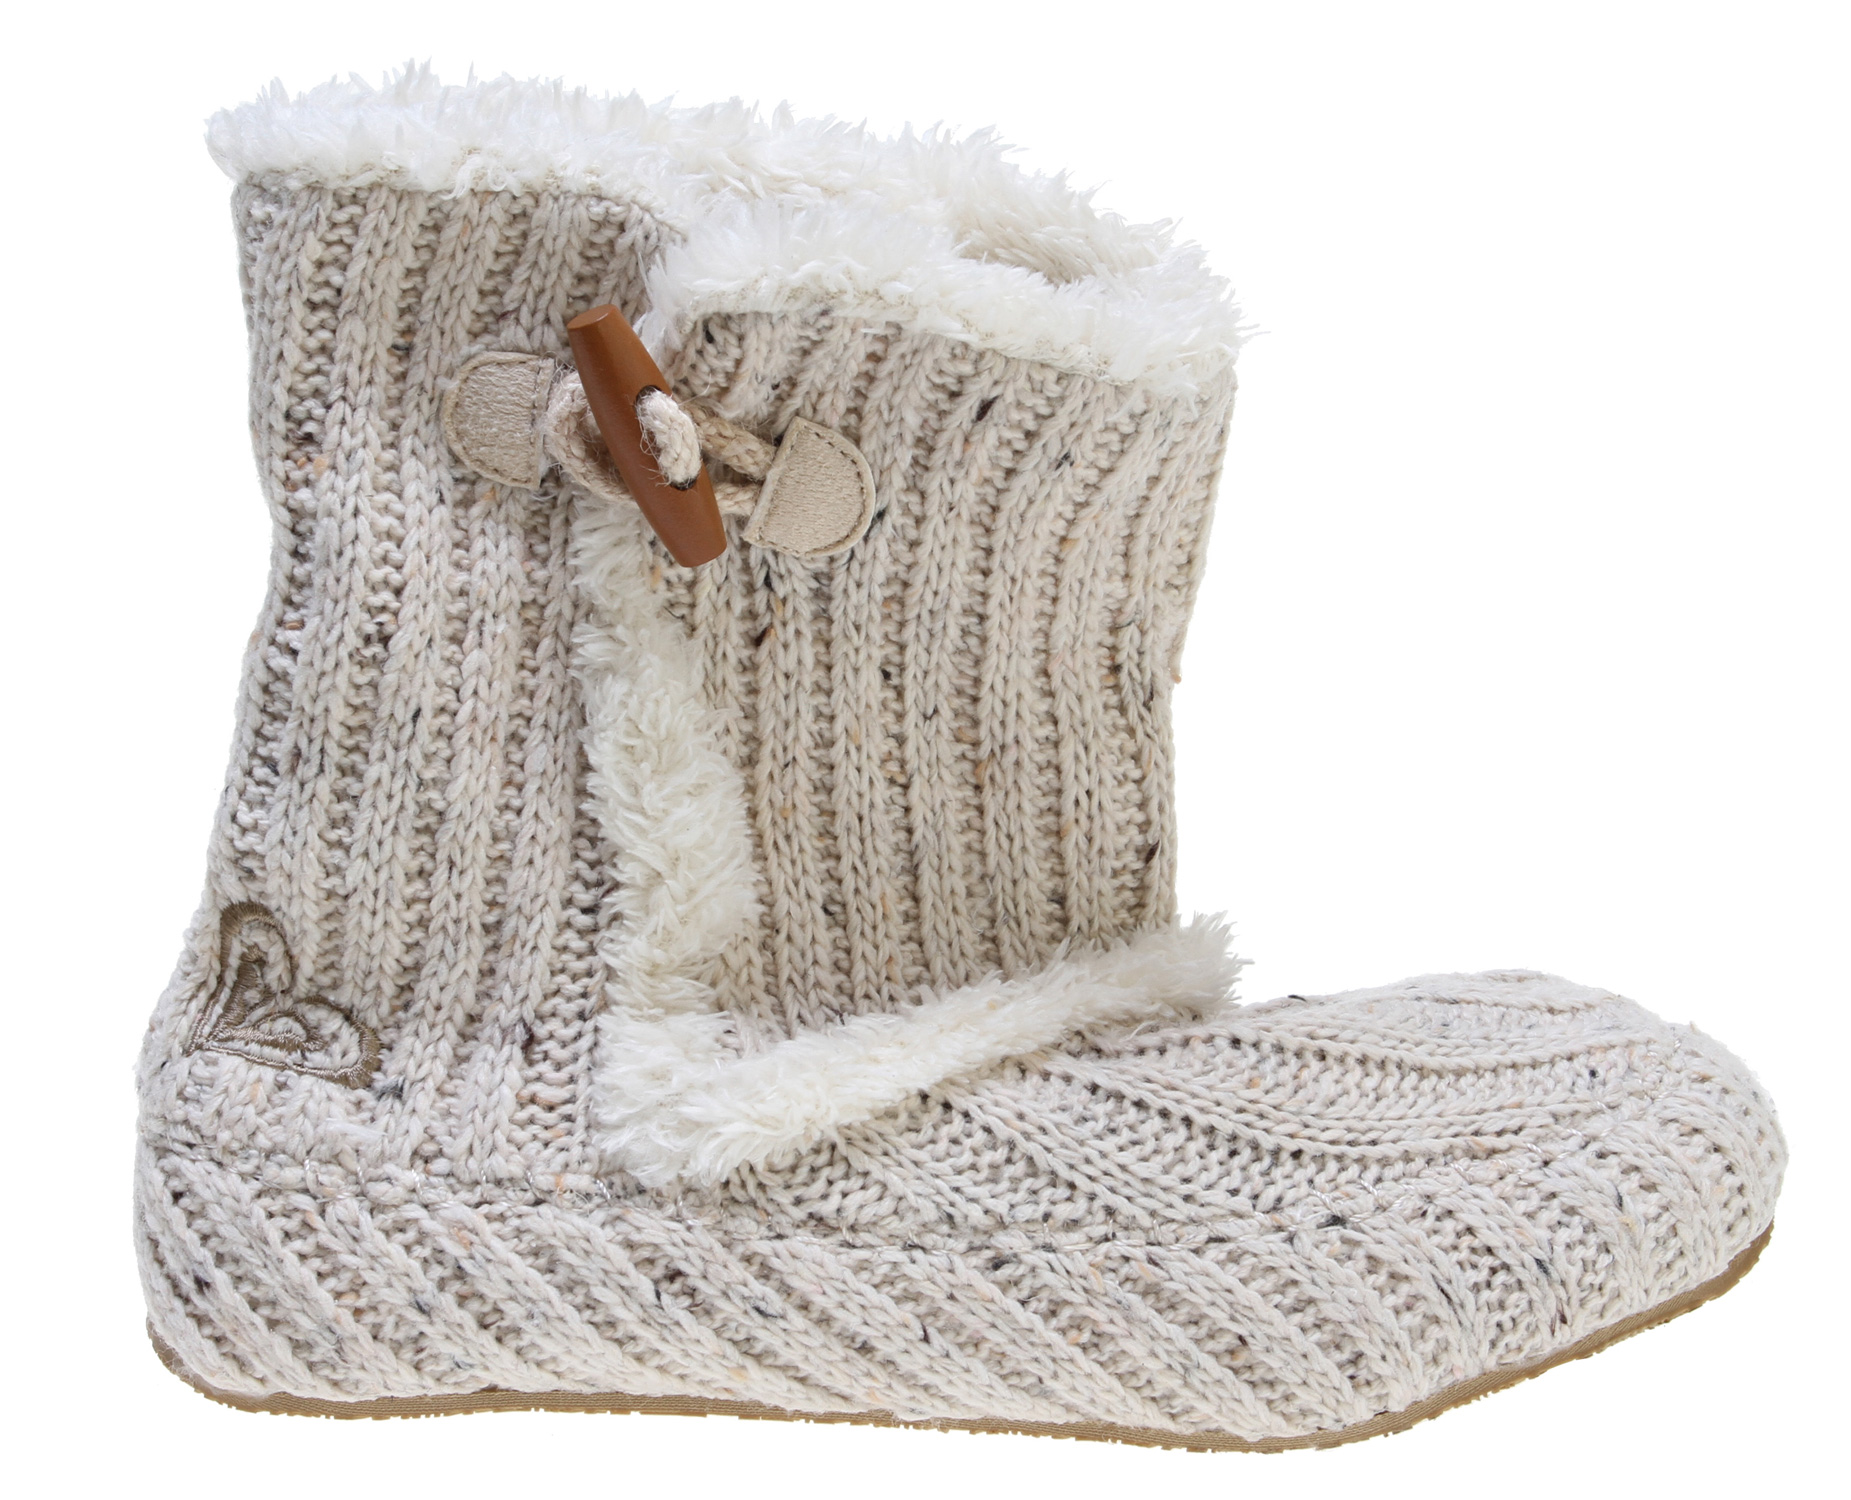 Surf Key Features of the Roxy BRR! Casual Boots: Soft knit upper with rope and wood toggle detail Embroidered Roxy heart Cozy faux fur trim, lining and insole Padded insole for comfort Durable indoor/outdoor outsole - $43.95